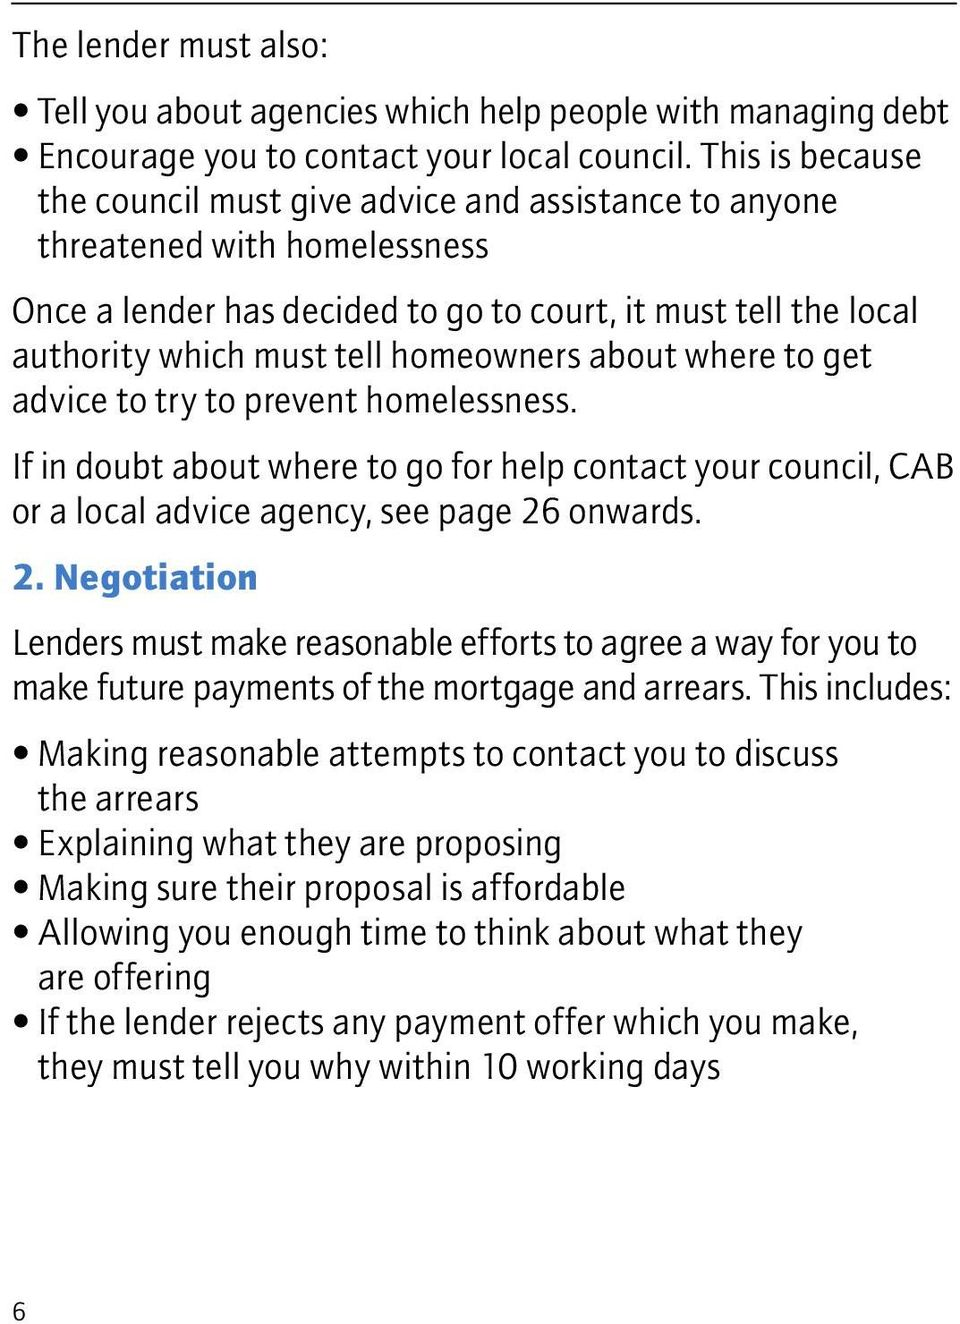 homeowners about where to get advice to try to prevent homelessness. If in doubt about where to go for help contact your council, CAB or a local advice agency, see page 26